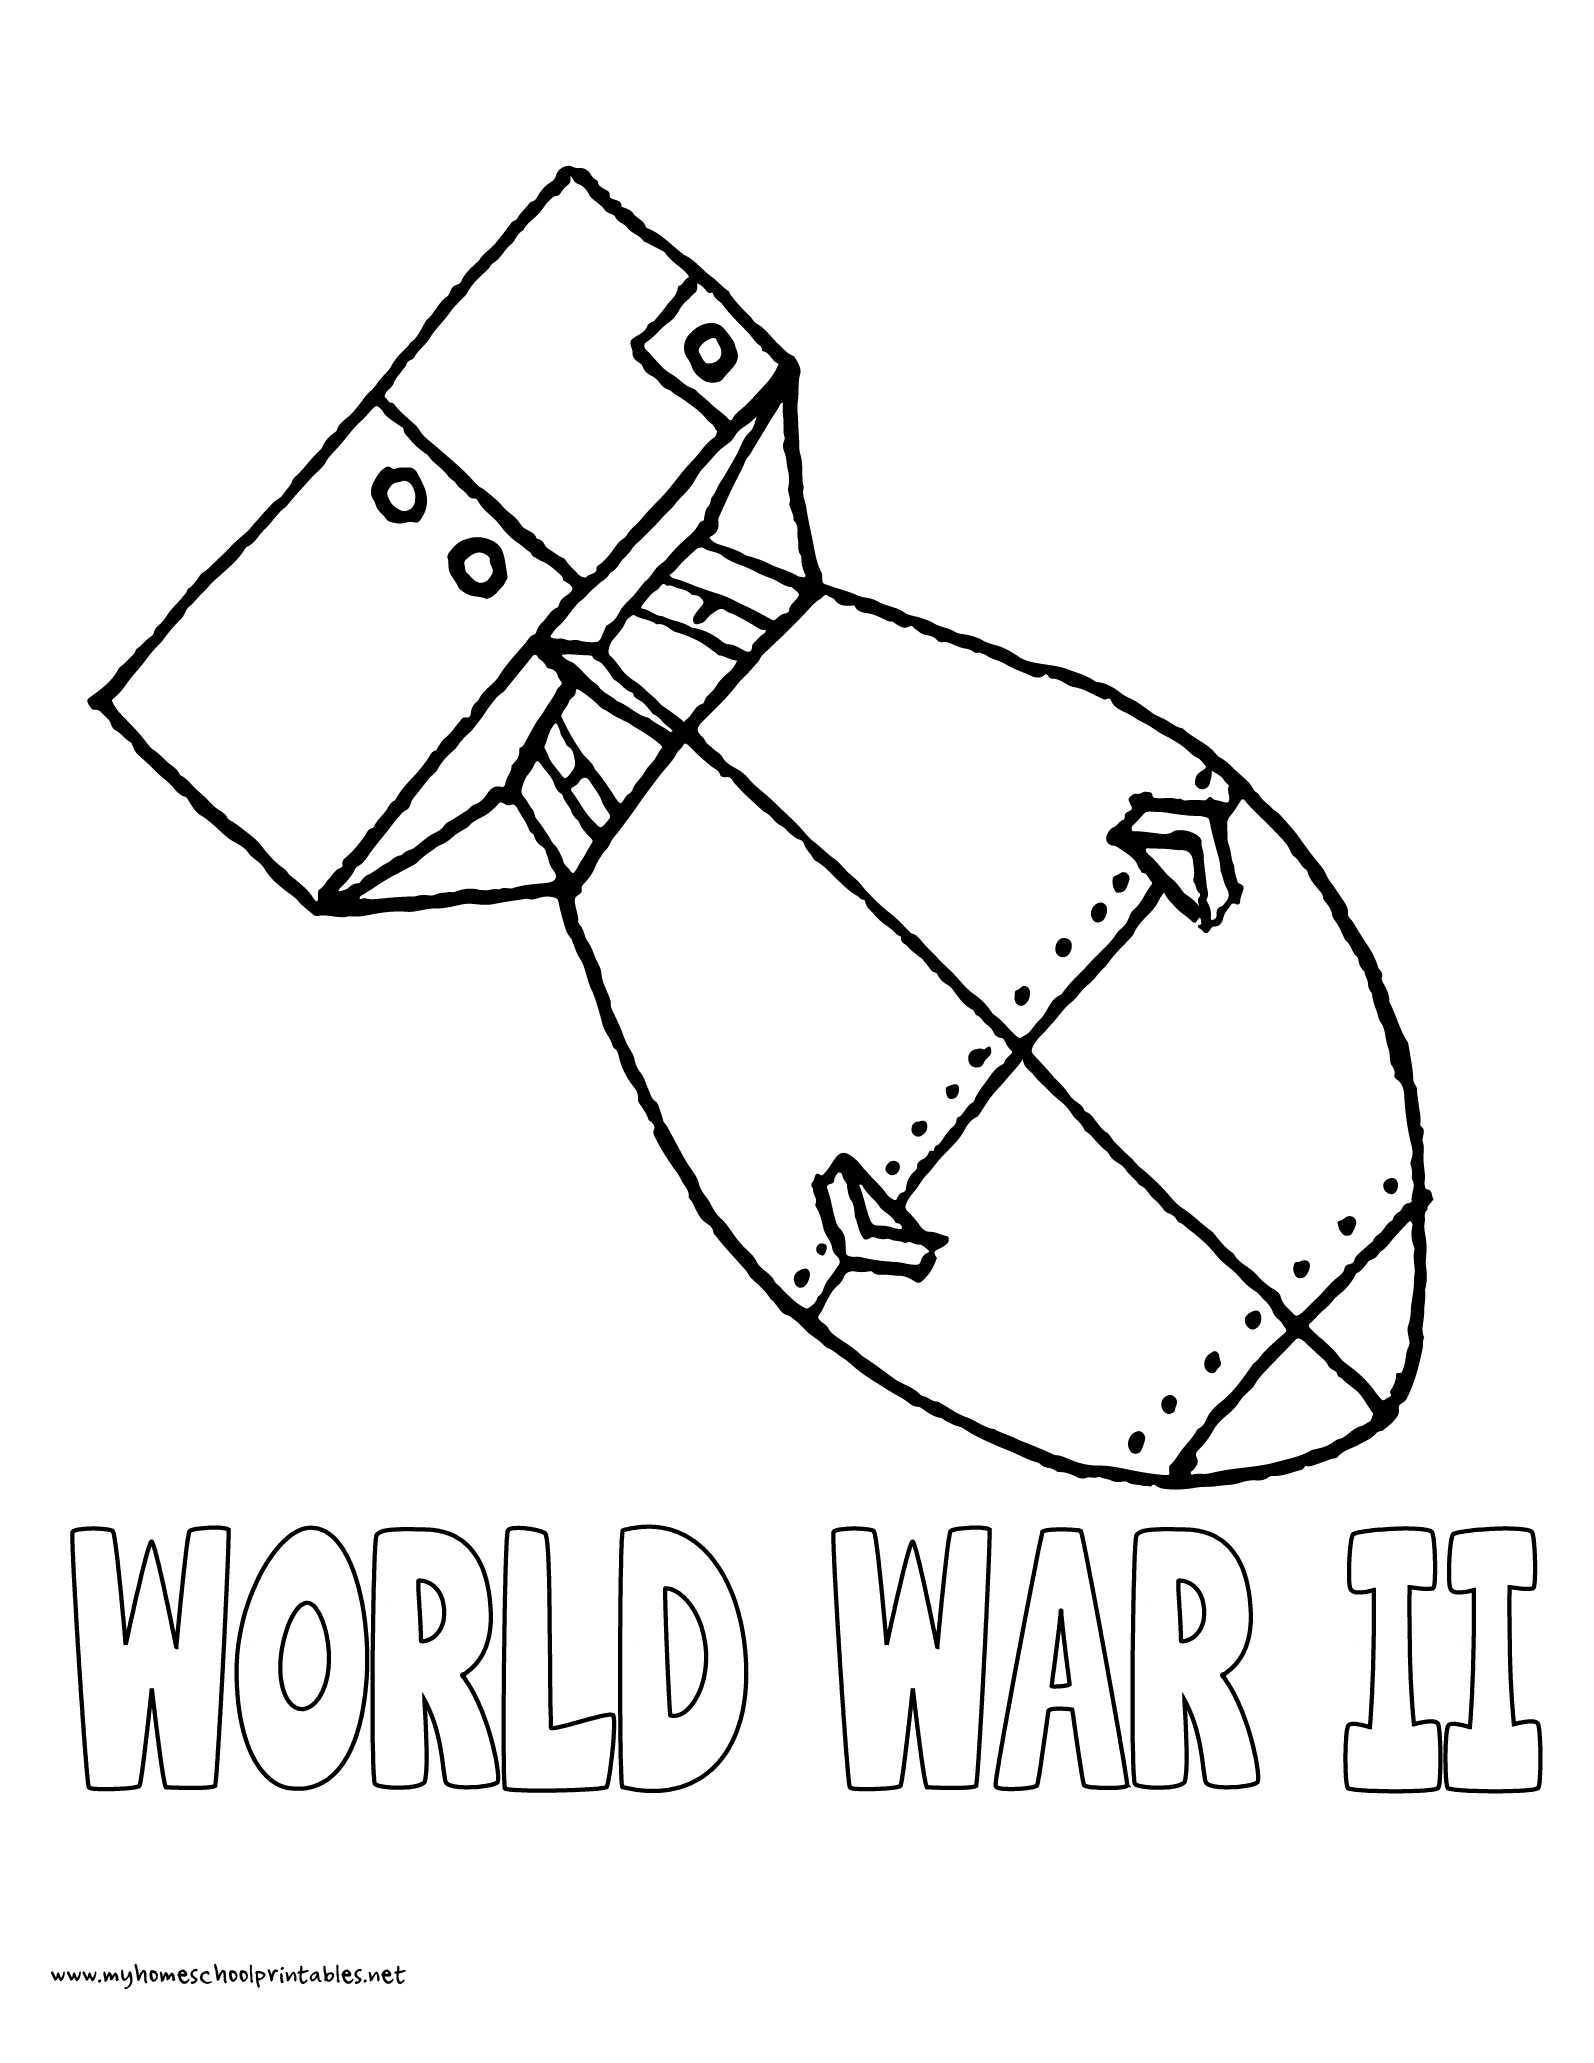 World War Ii Coloring Pages Free